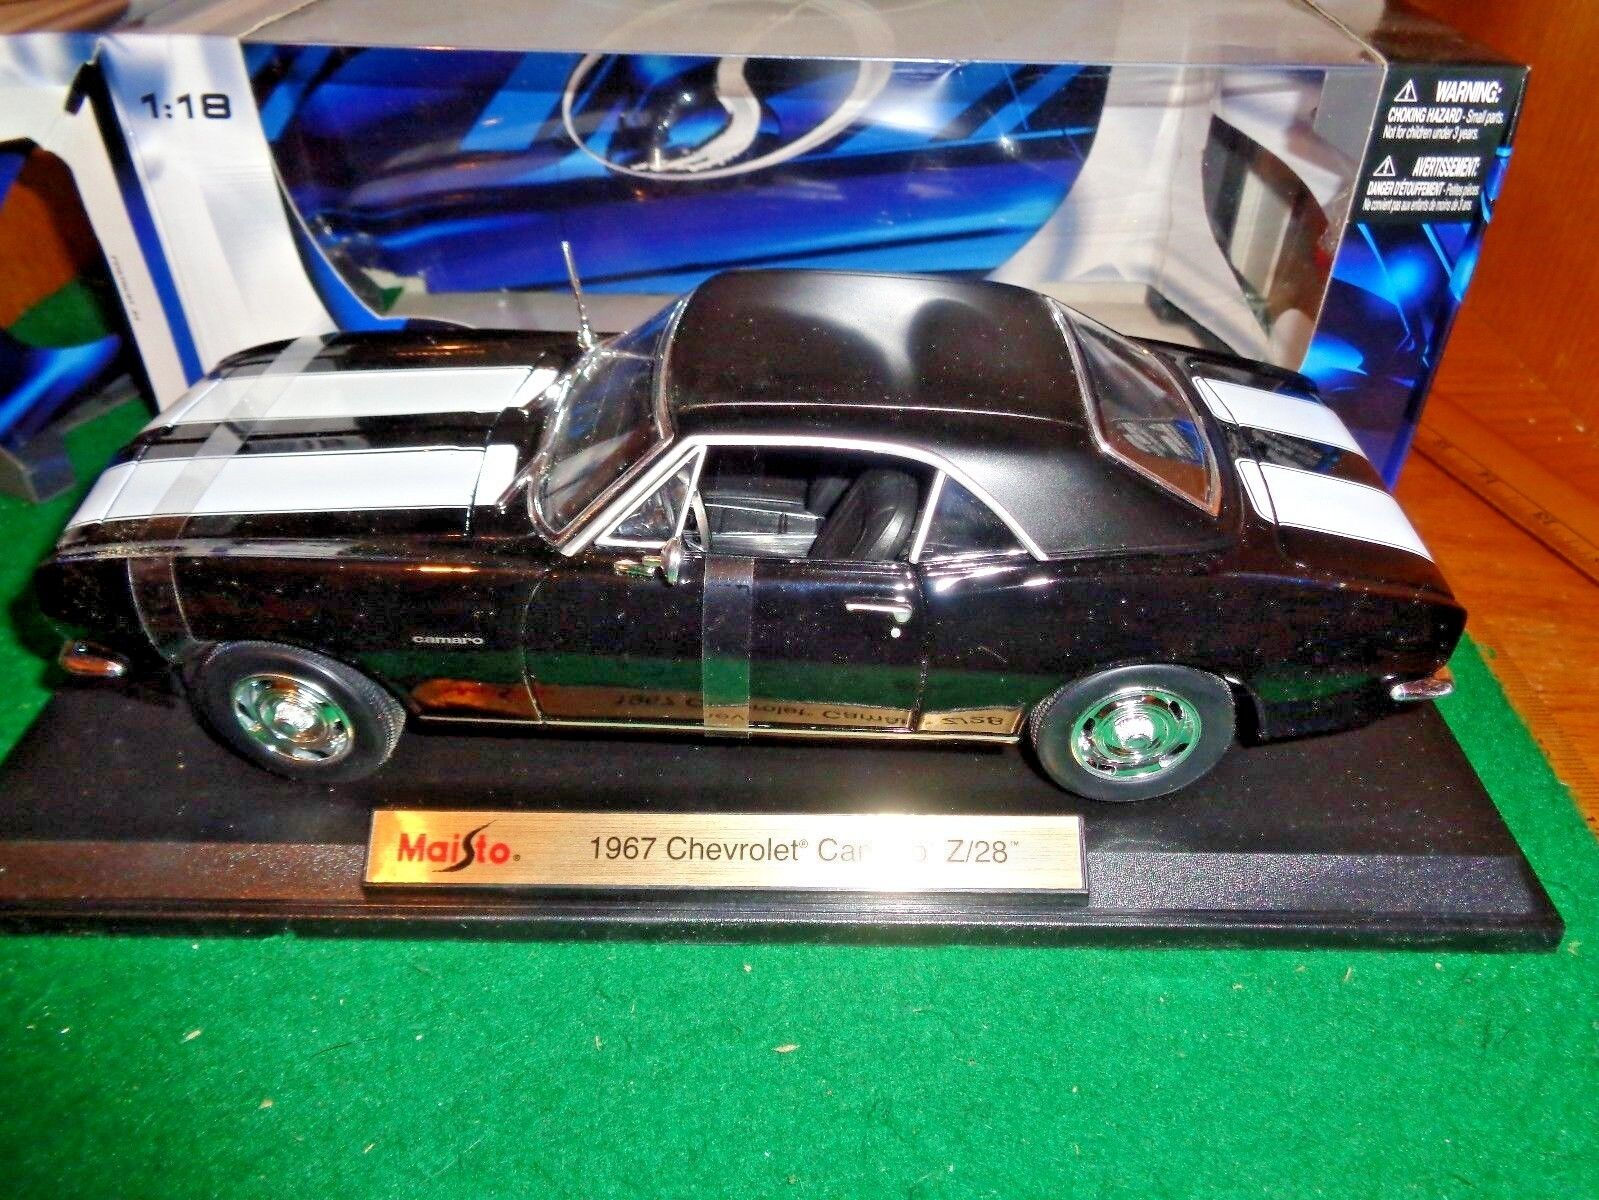 Maisto Special Edition 1967 Chevrolet Camaro Z 28 in 1 18 scale made in Thailand